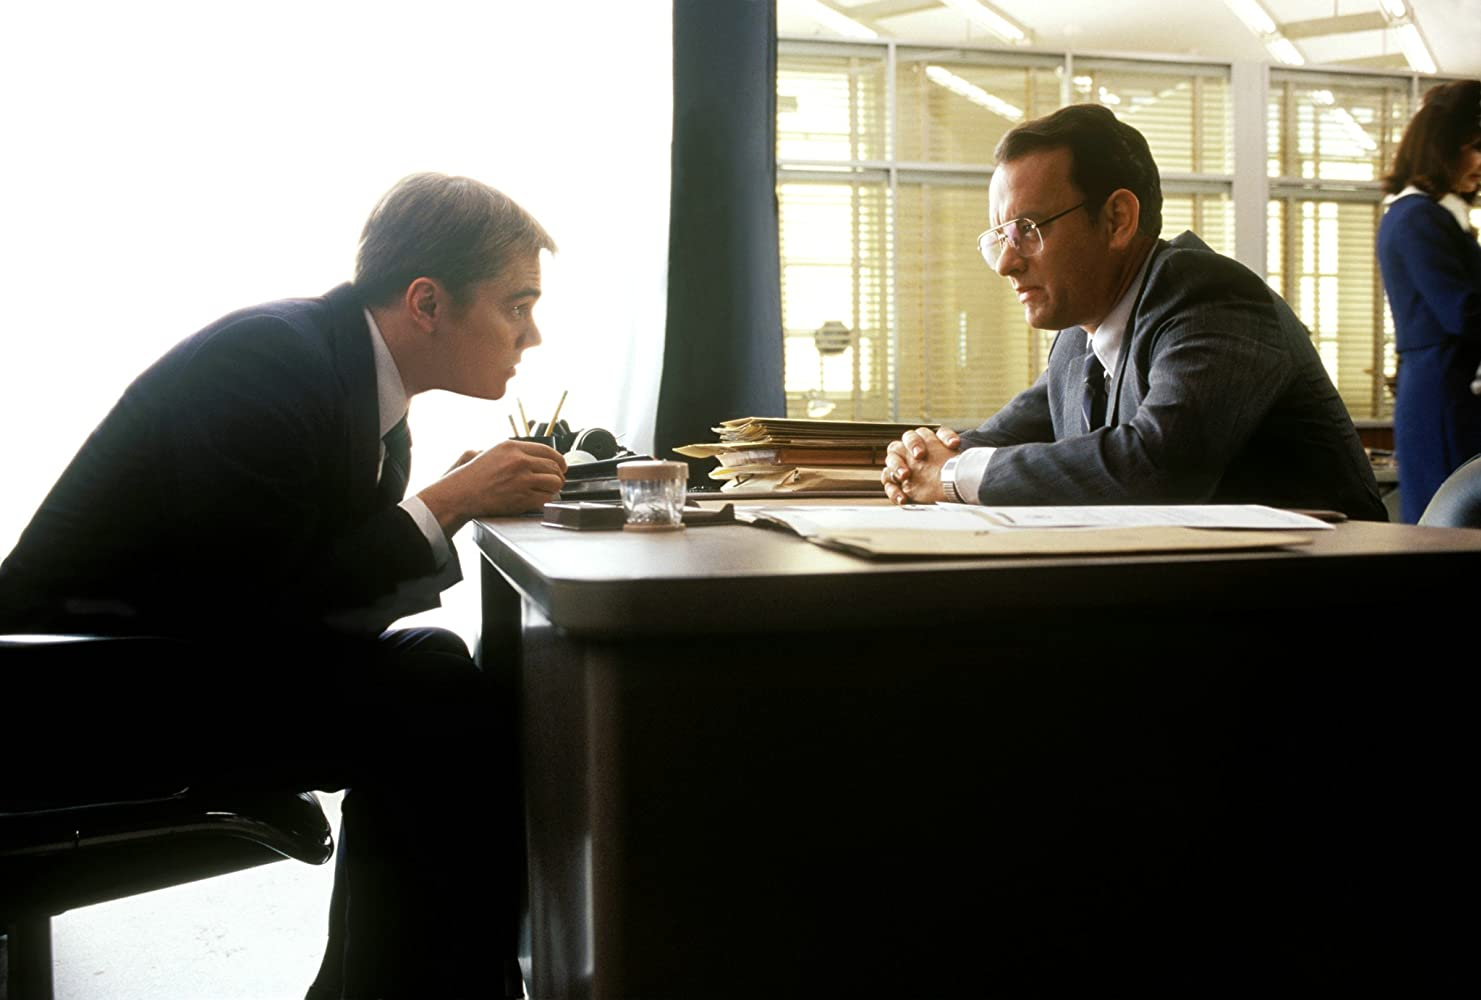 Leonardo DiCaprio and Tom Hanks in Catch Me If You Can (2002)